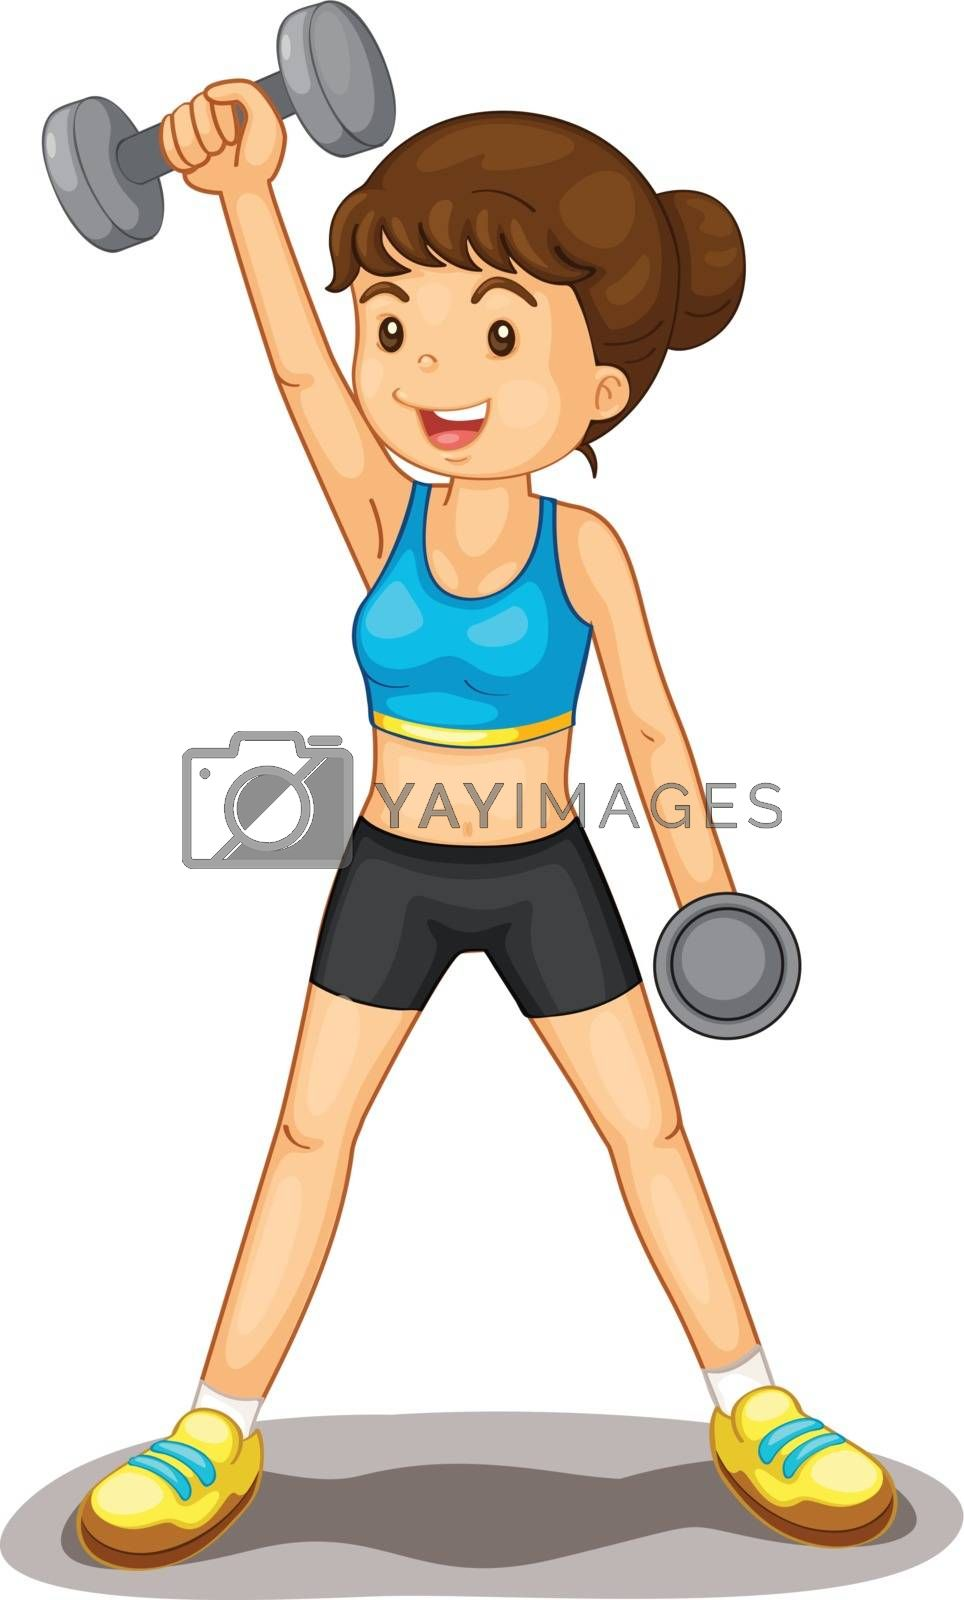 Royalty free image of fitness by iimages